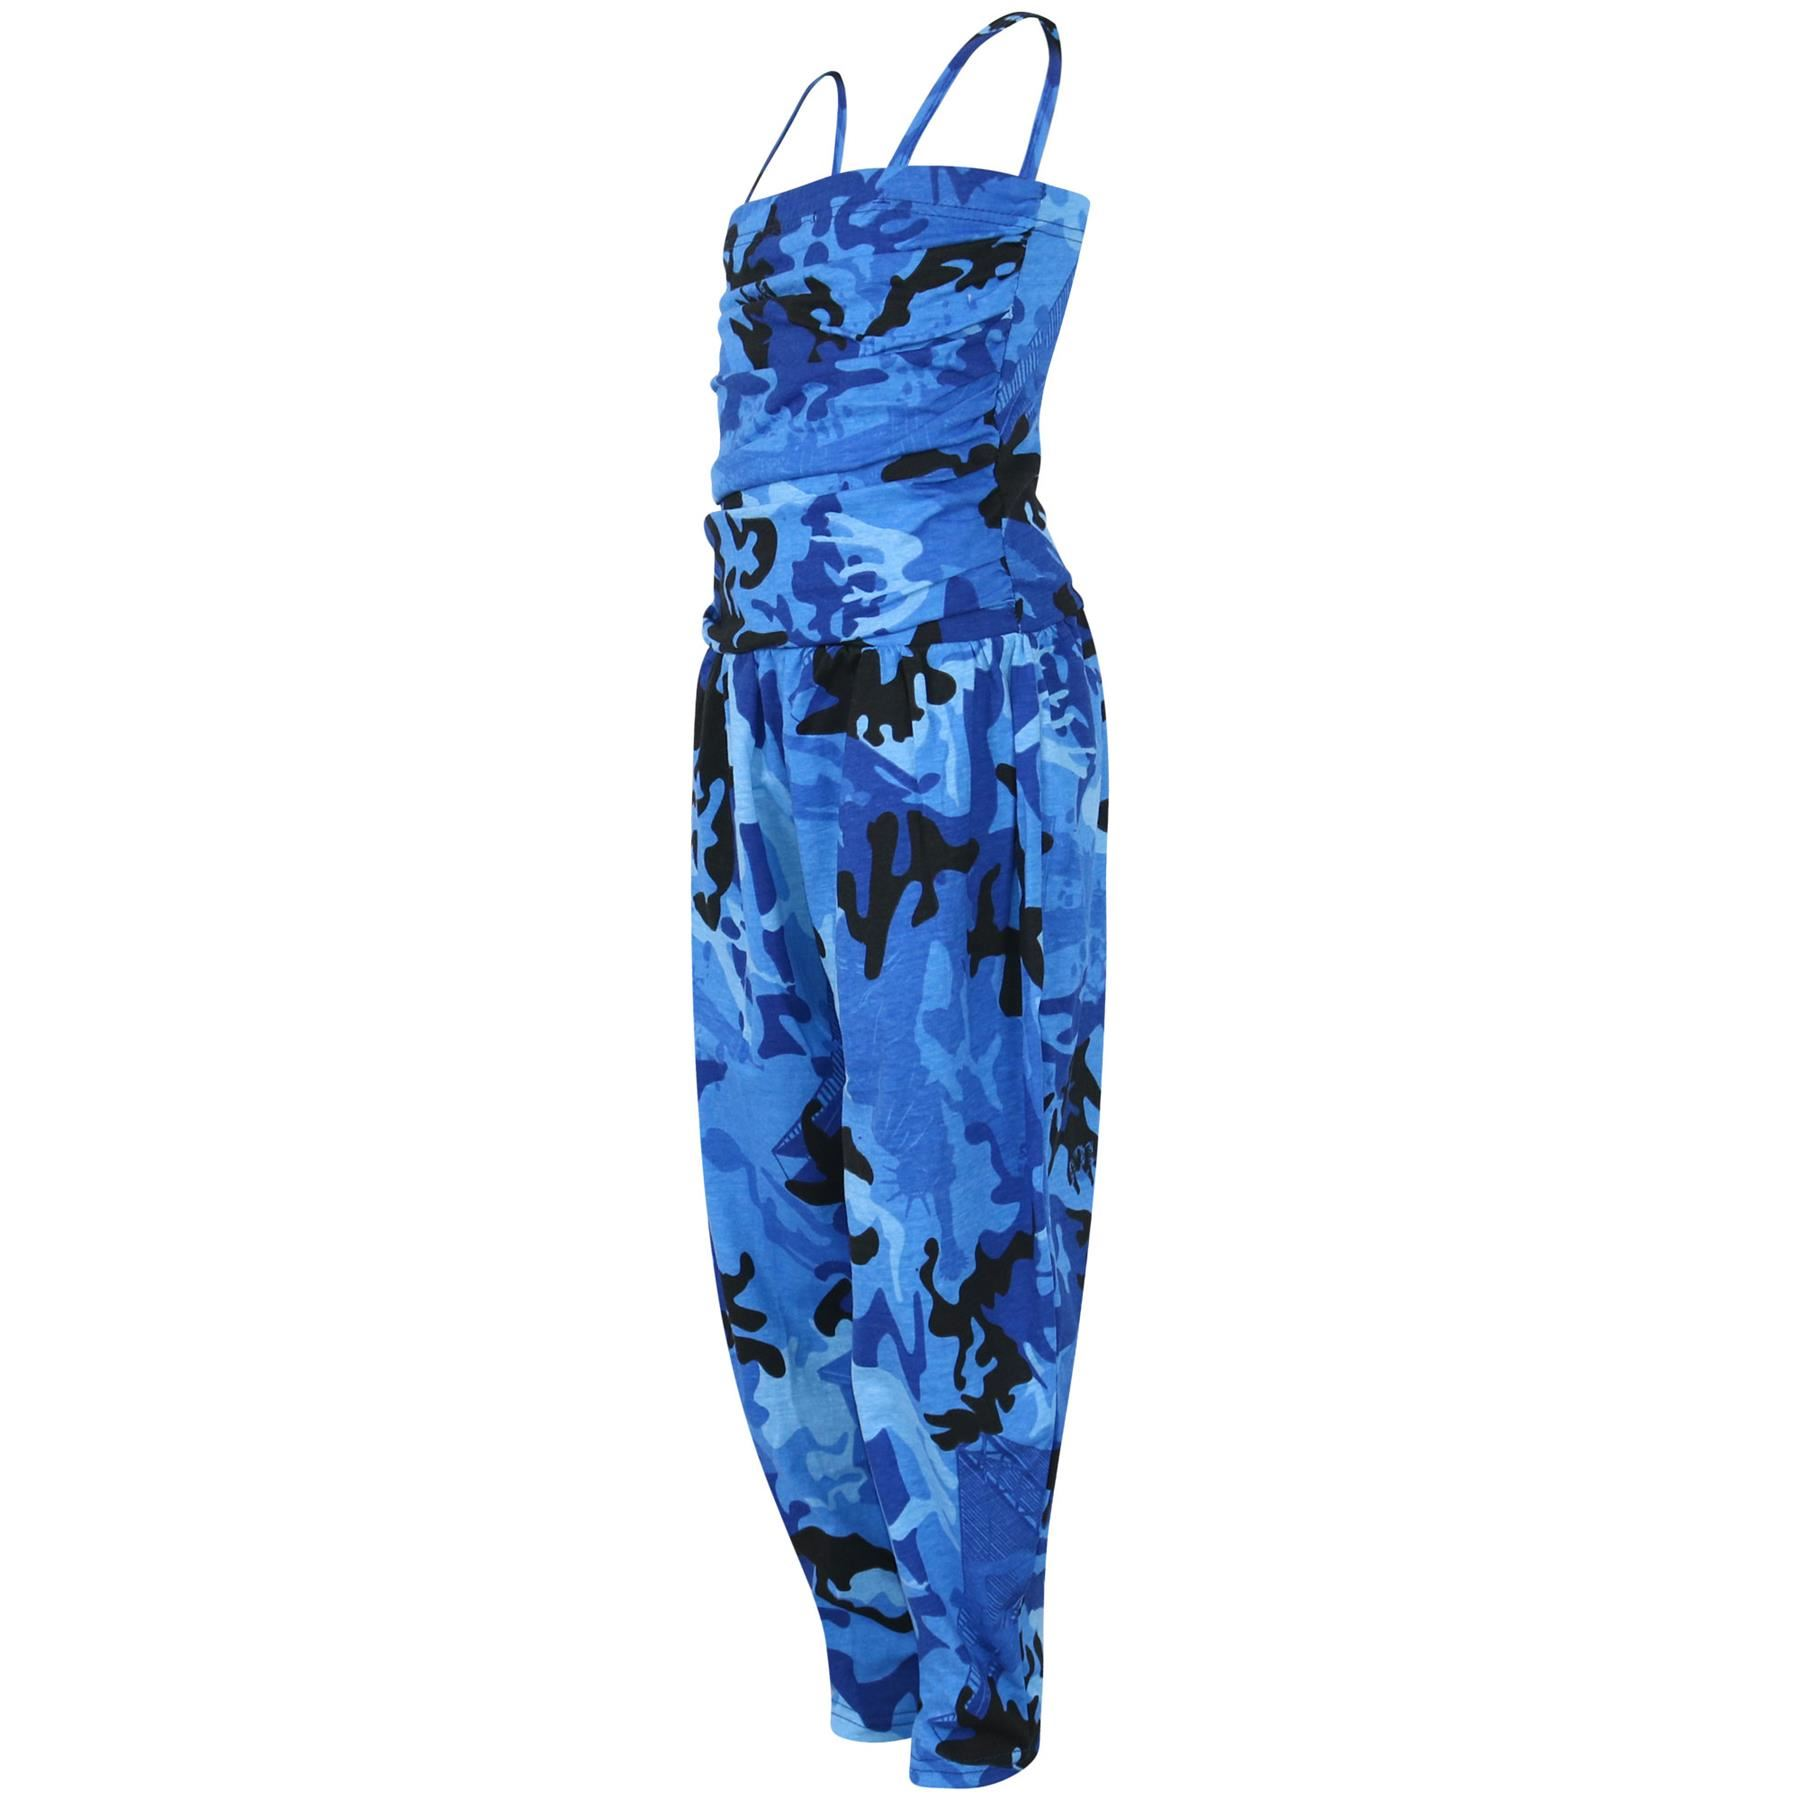 Kids Girls Jumpsuit Camouflage Blue Trendy Fashion All In One Jumpsuits 5-13 Yr